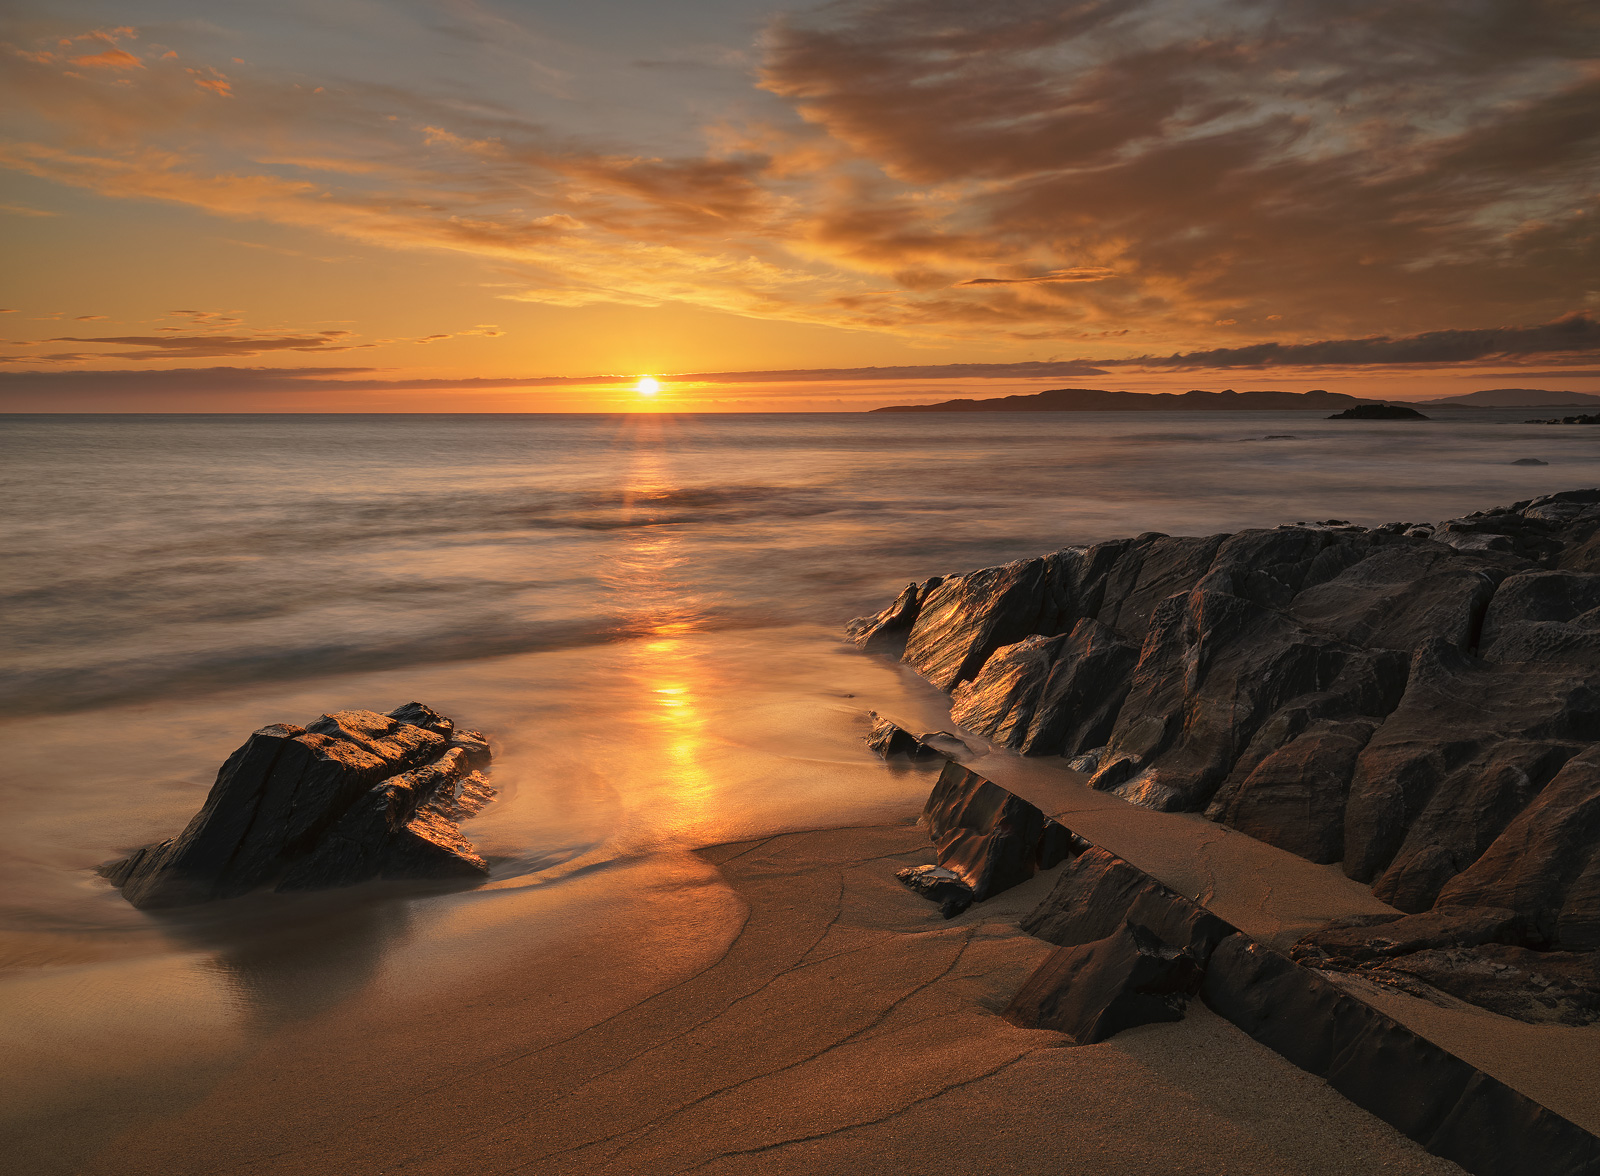 Intense orange light from a satsuma sunset reflects off the orange sand beach and caramelised rocks at Traigh Mhor beach on Harris.